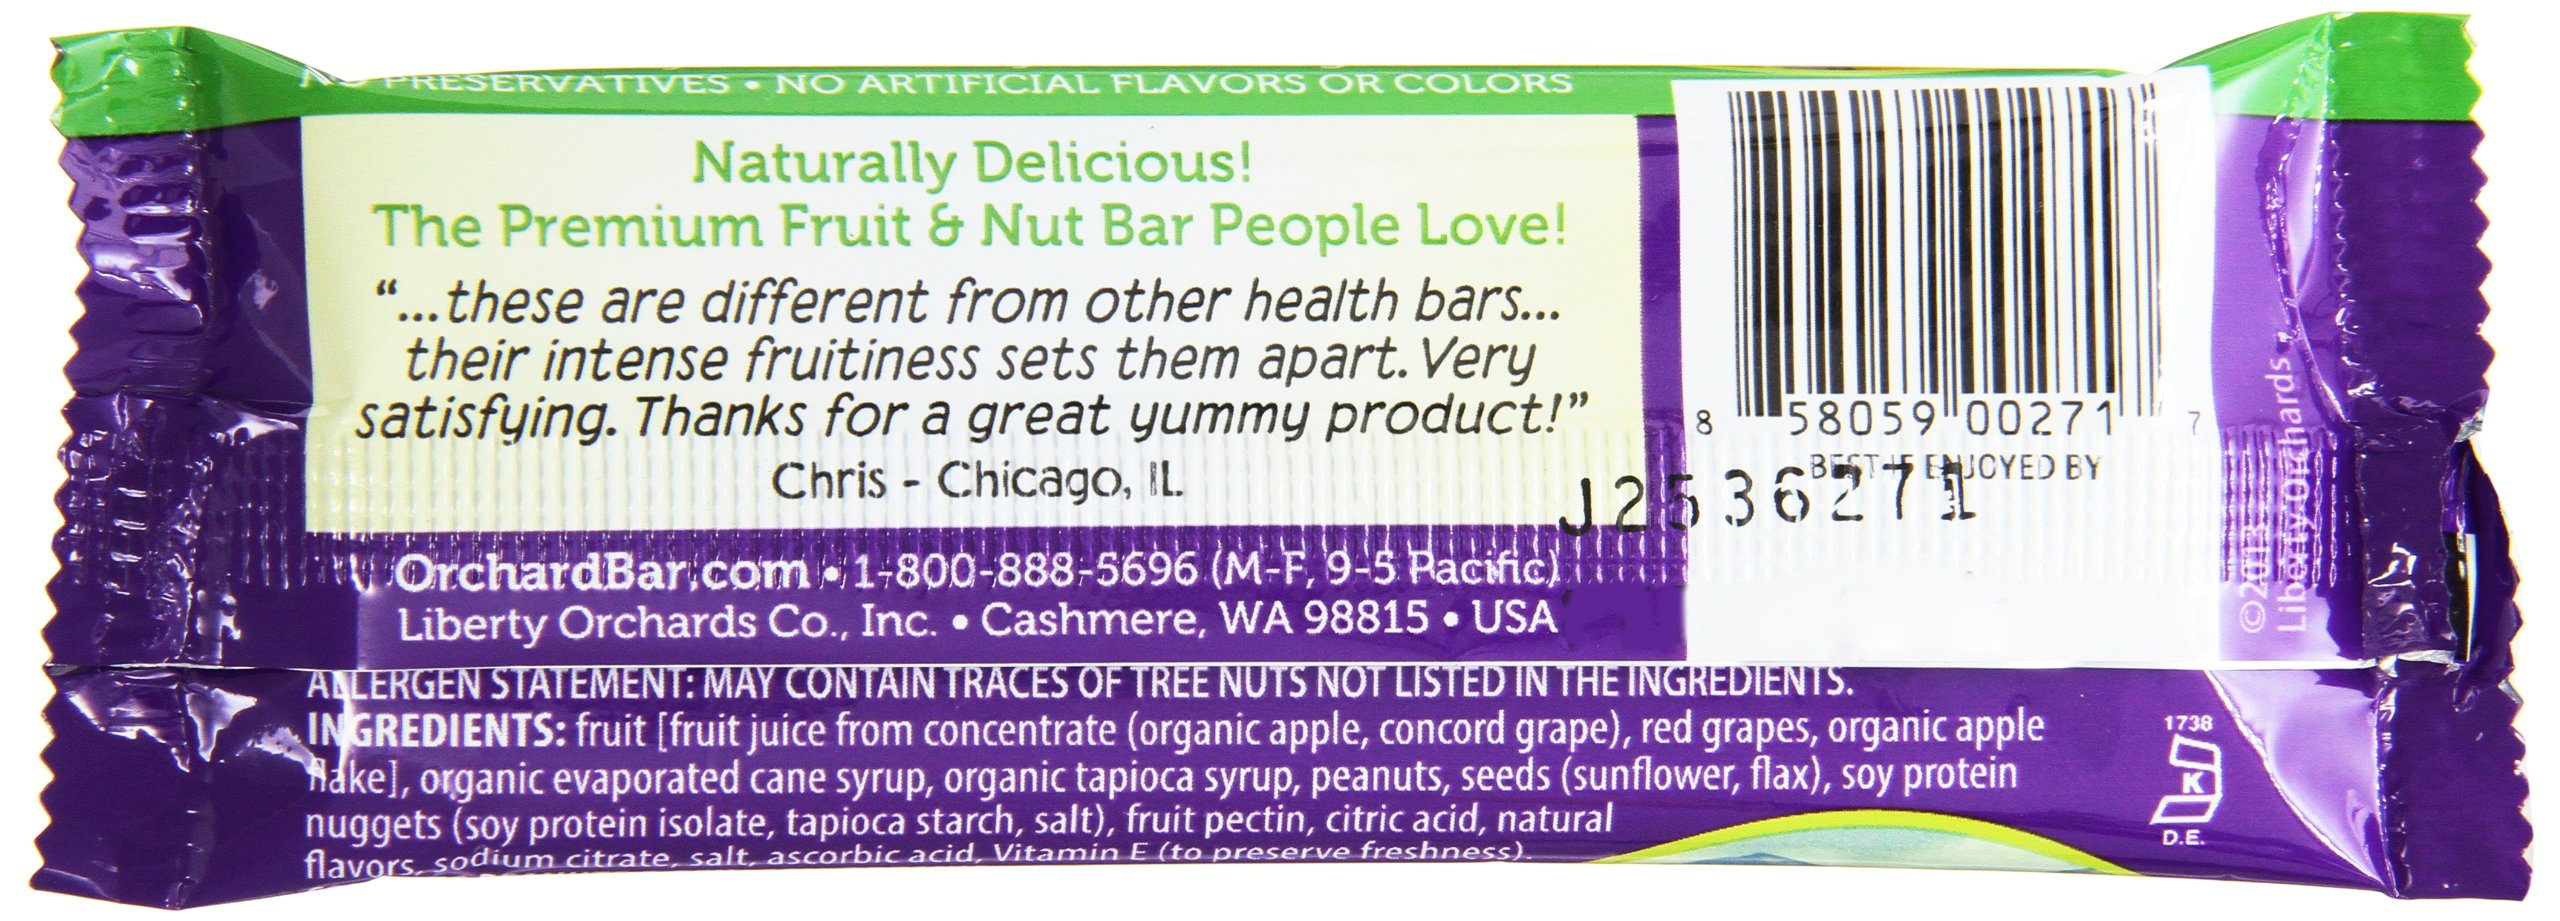 Orchard Bars Peanut Crunch Fruit and Nut Bar, Concord Grape, 1.4 Ounce (Pack of 12) by Orchard Bars (Image #4)